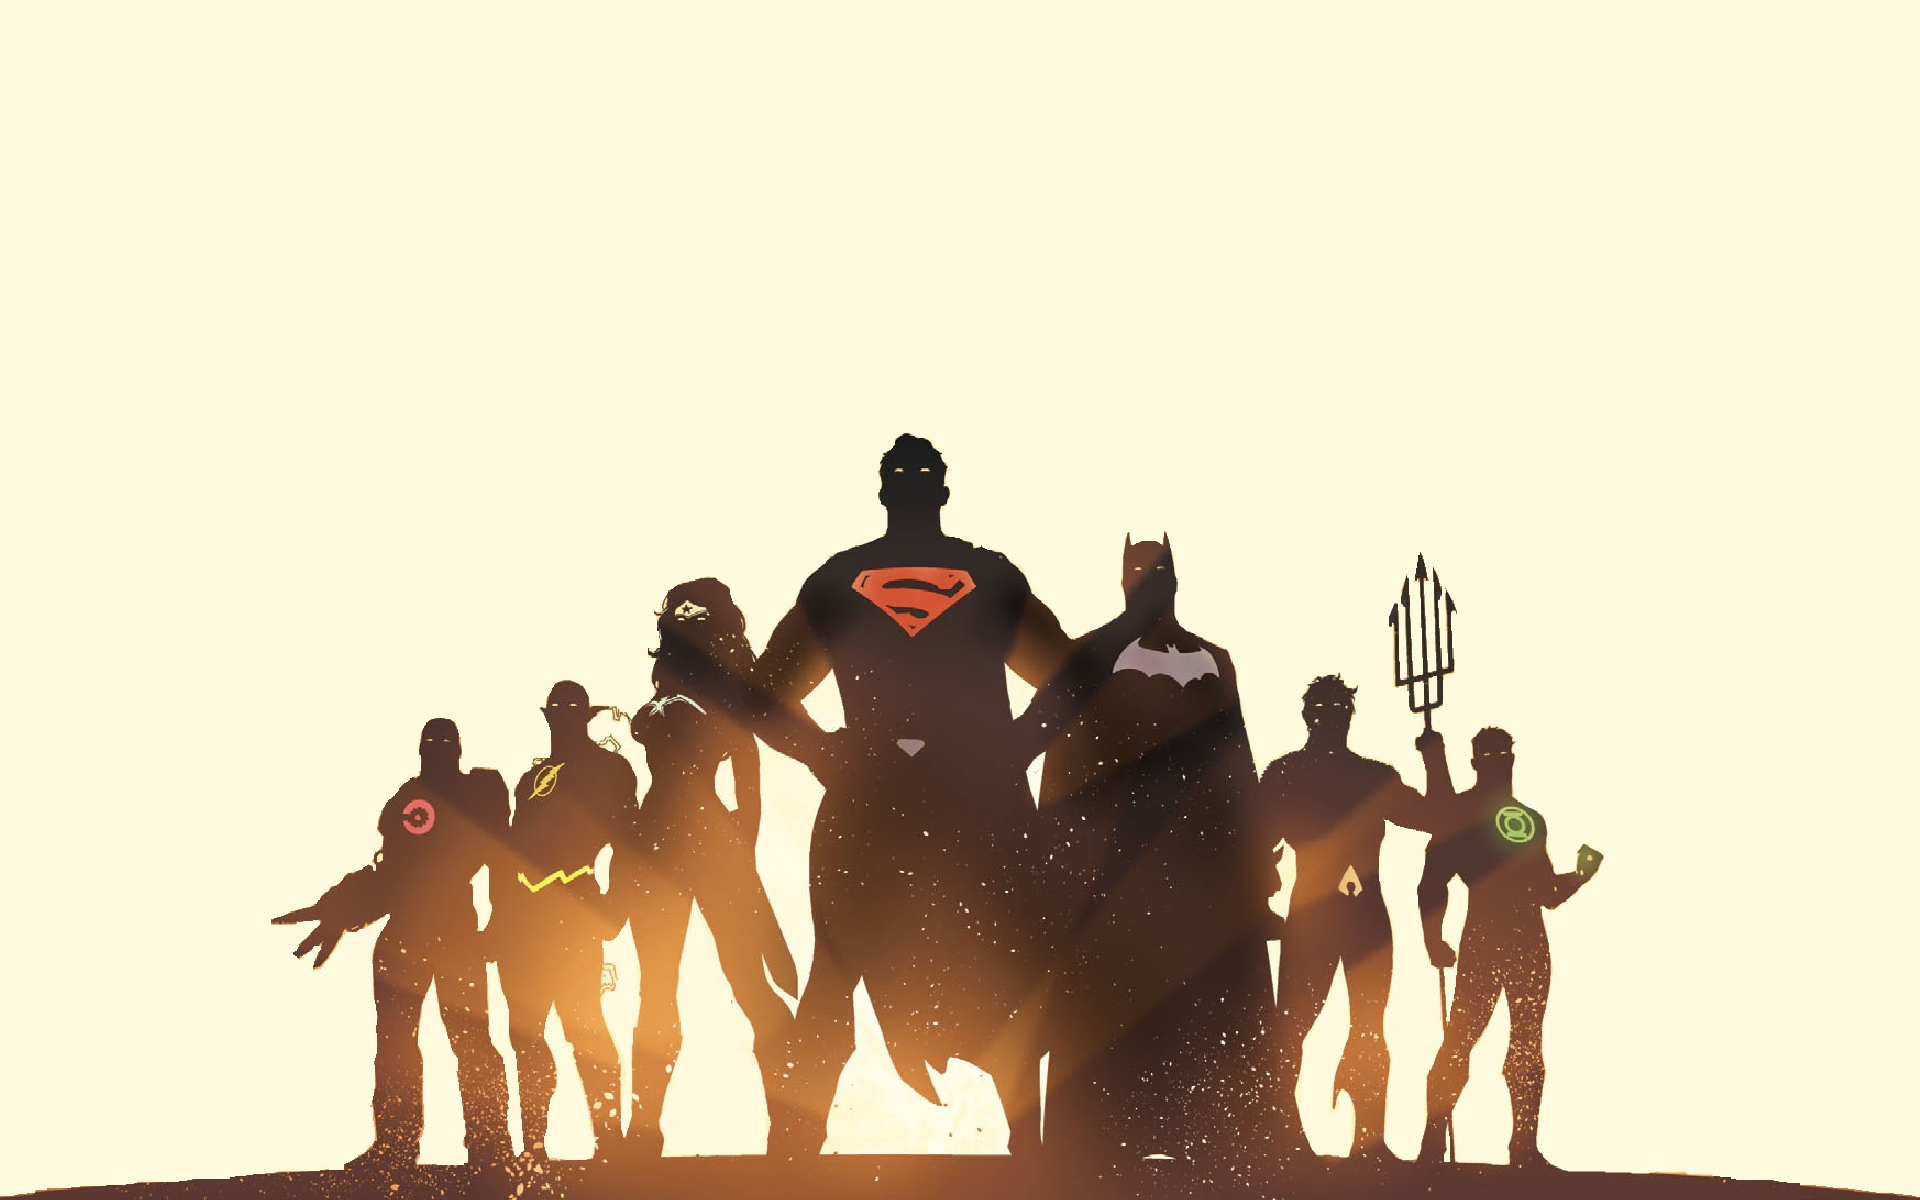 Justice League Wallpaper 1920x1200 By Piebytwo On Deviantart